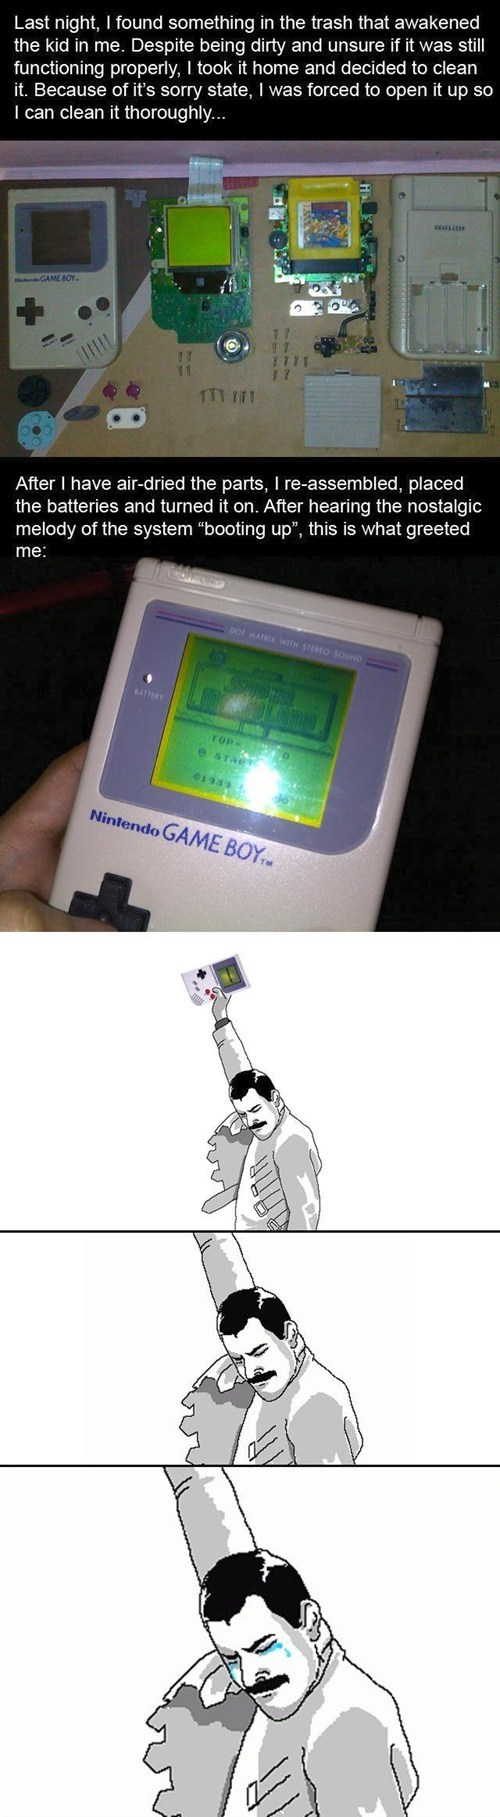 faith in humanity restored game boy fixed nintendo - 7080099584